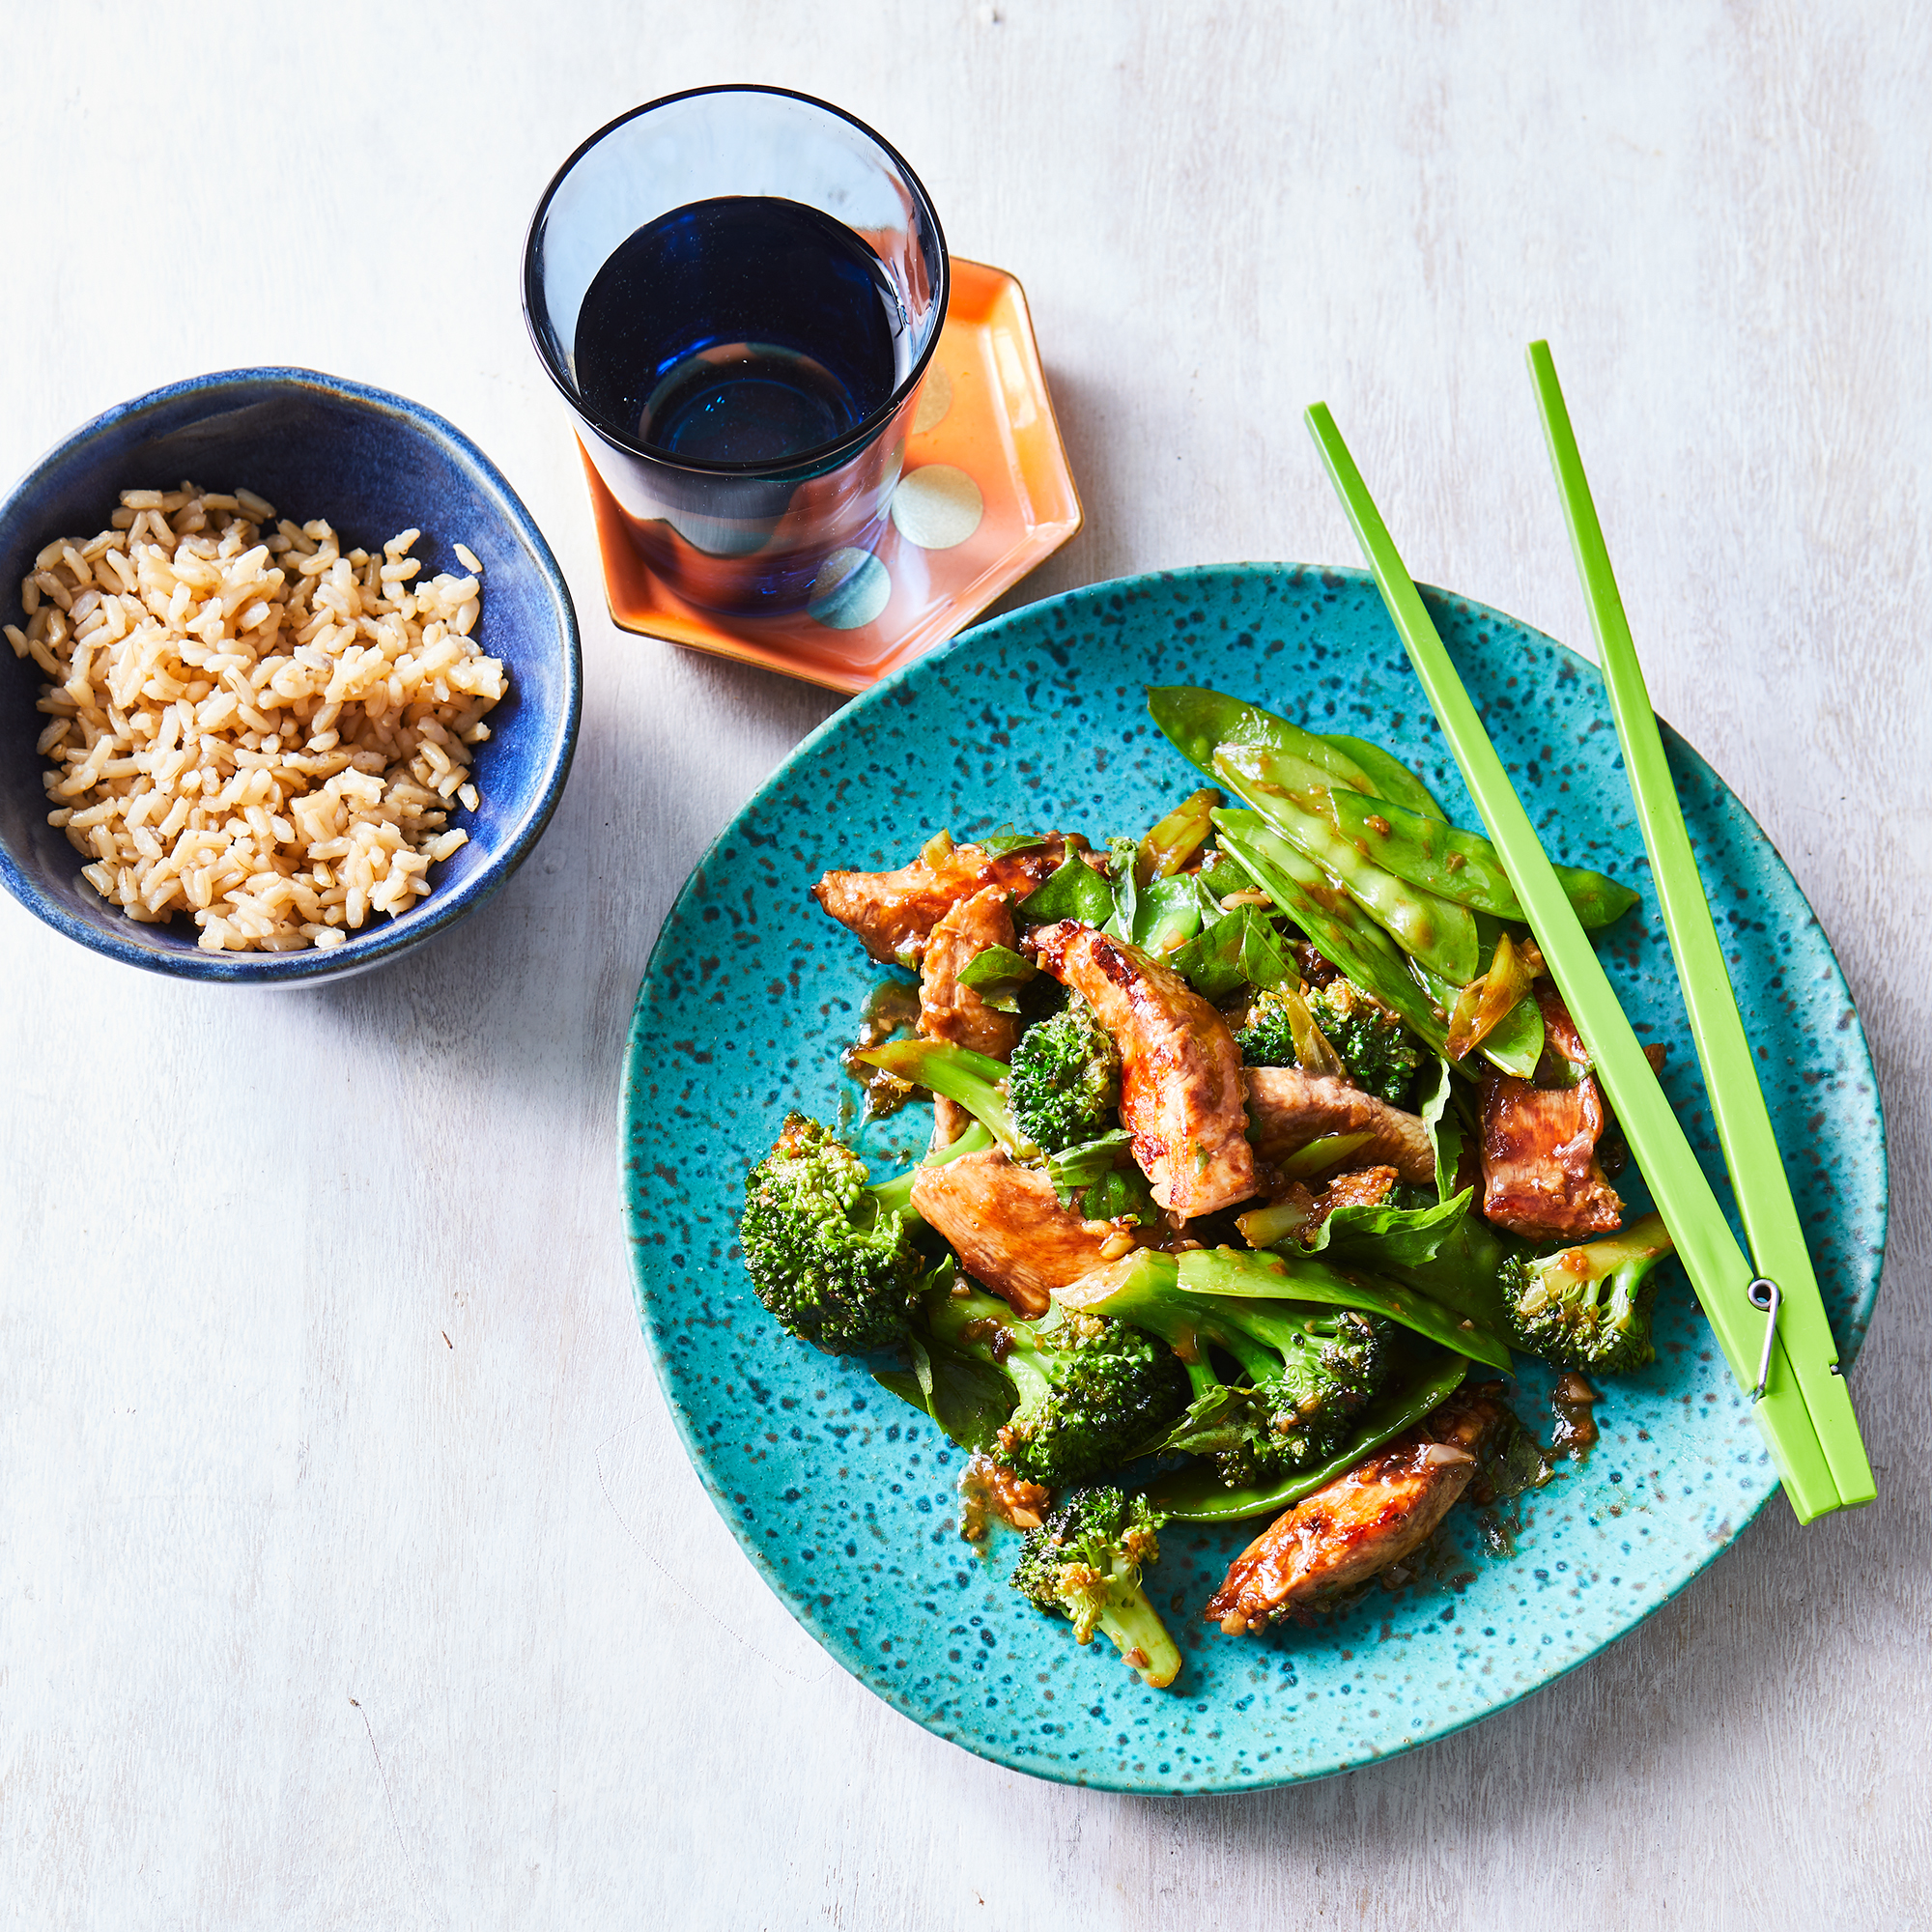 Chicken & Broccoli Stir-Fry with Ginger & Basil